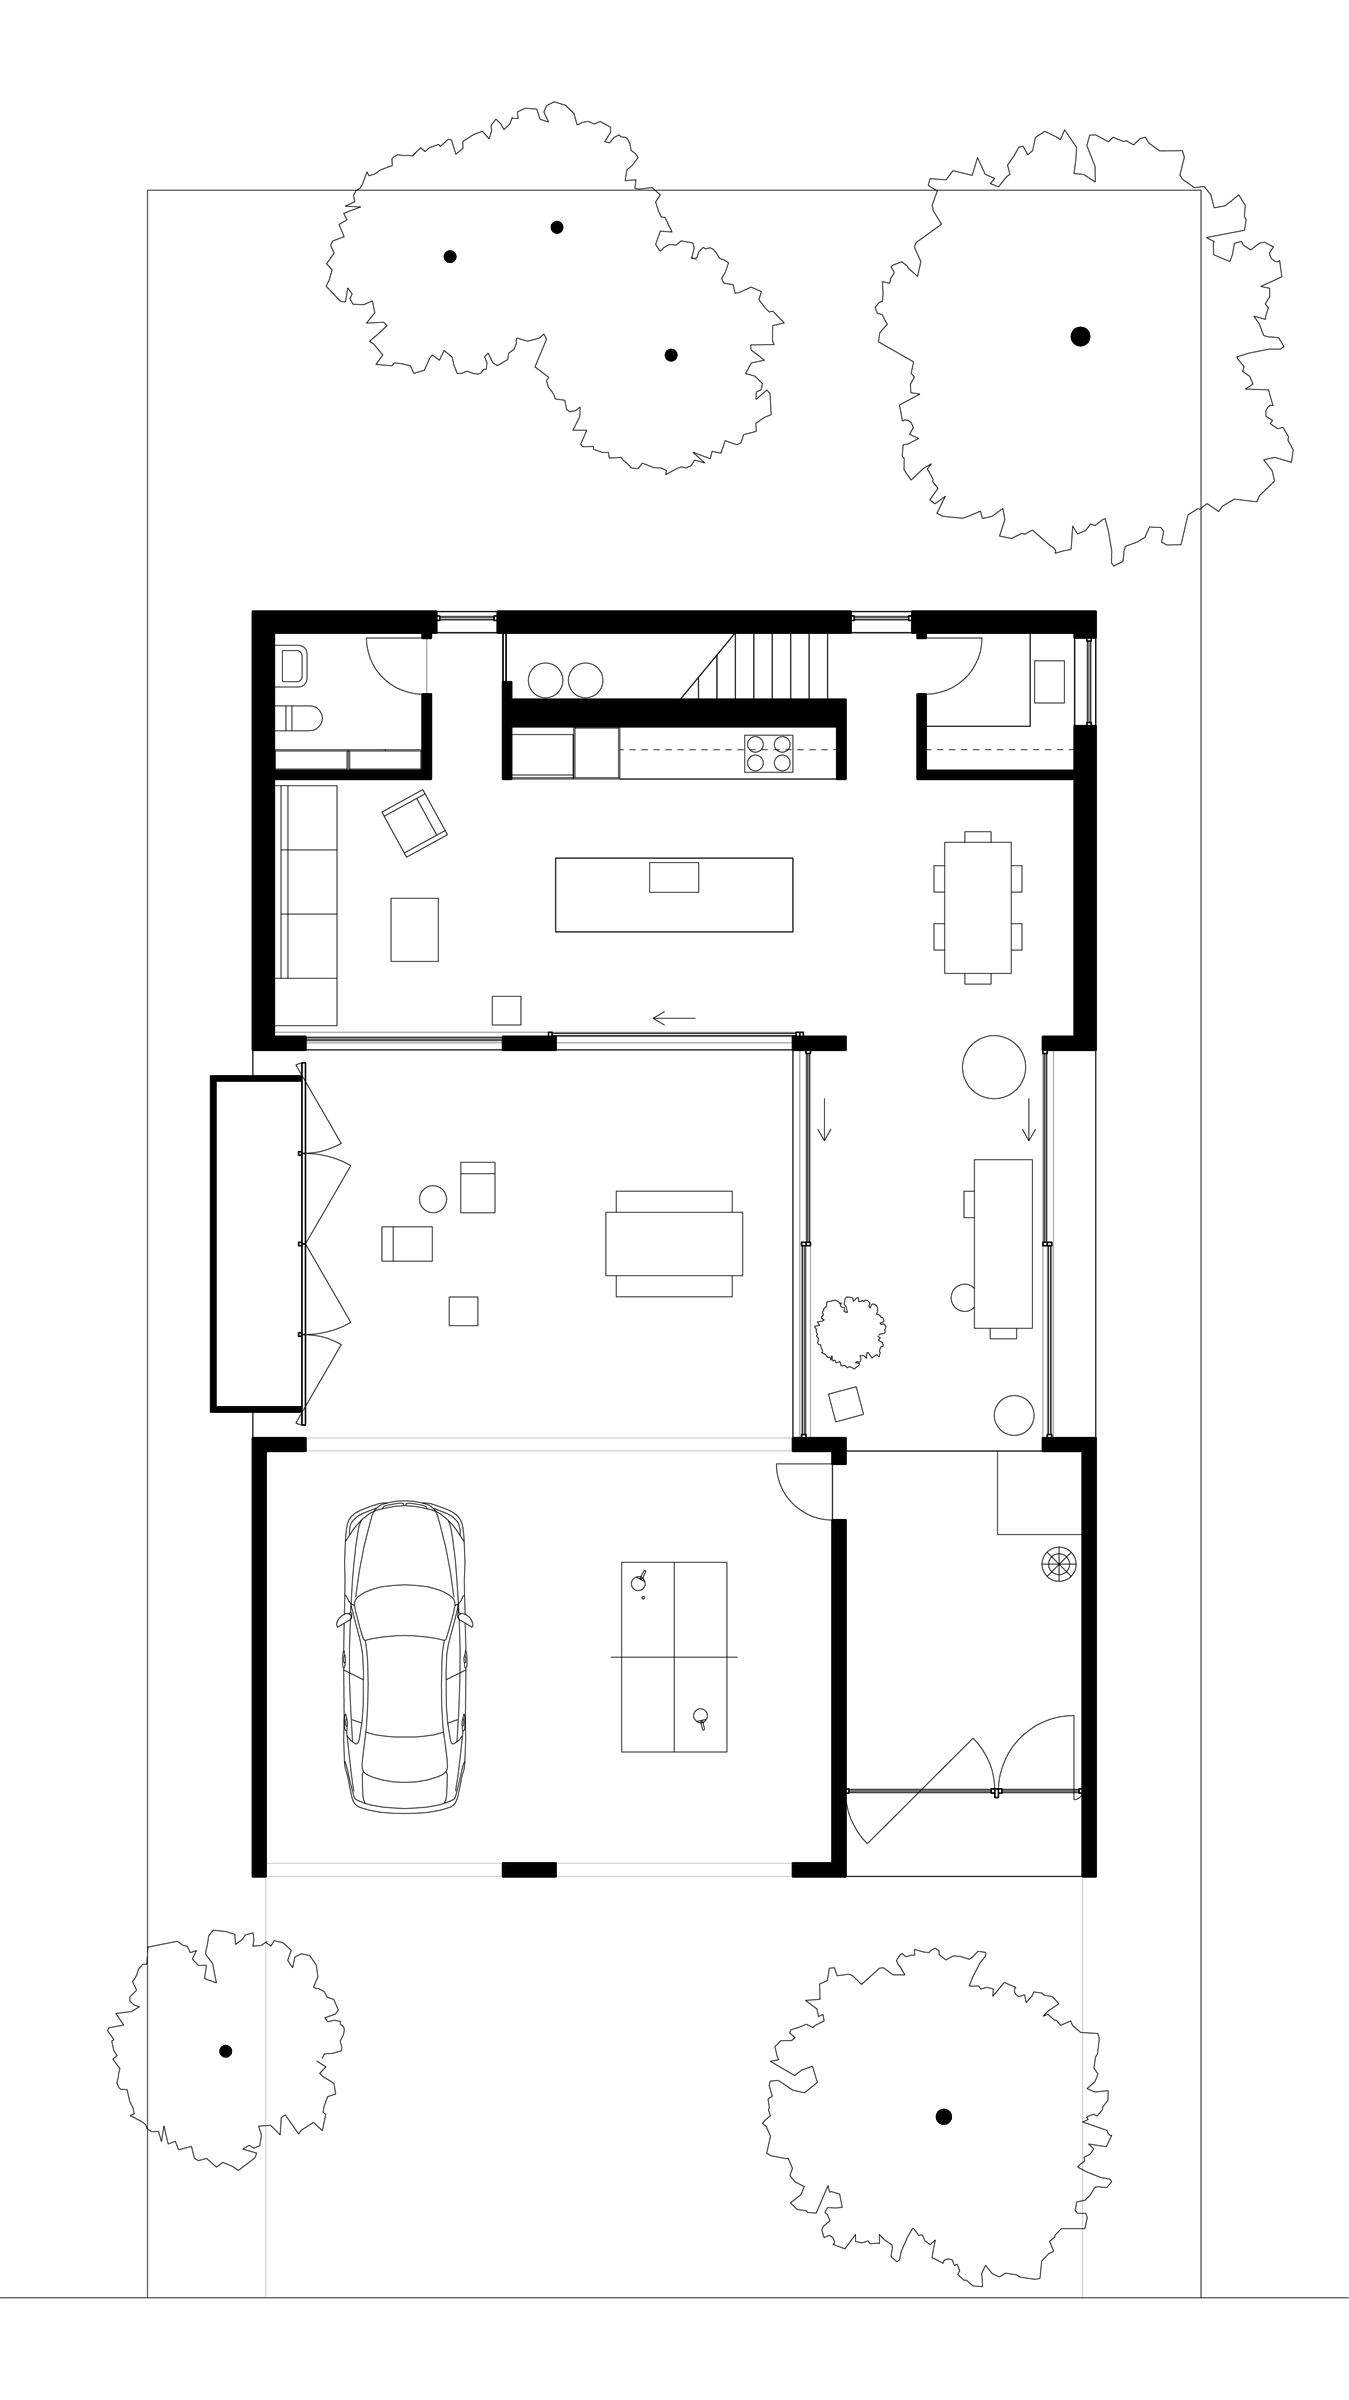 West Linn House ground floor plan